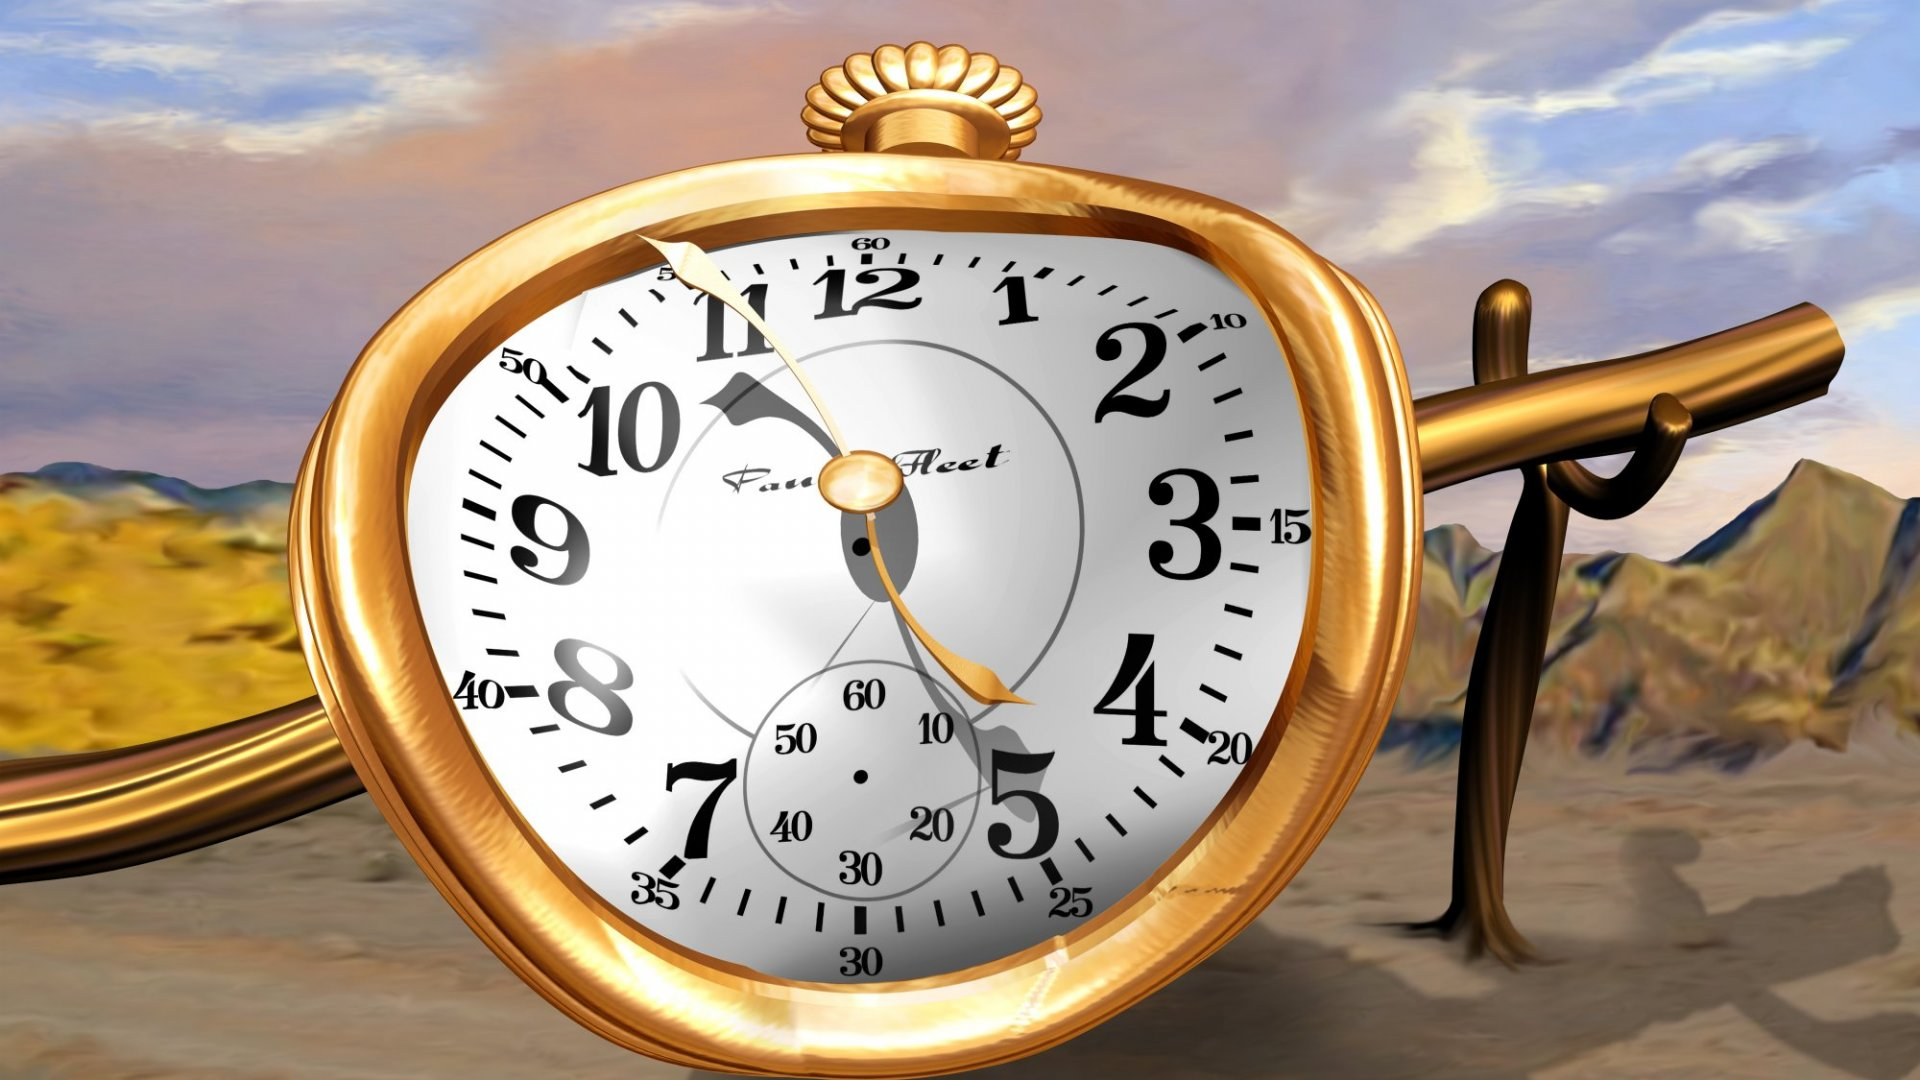 The 5 Things You Need to Know About Flextime